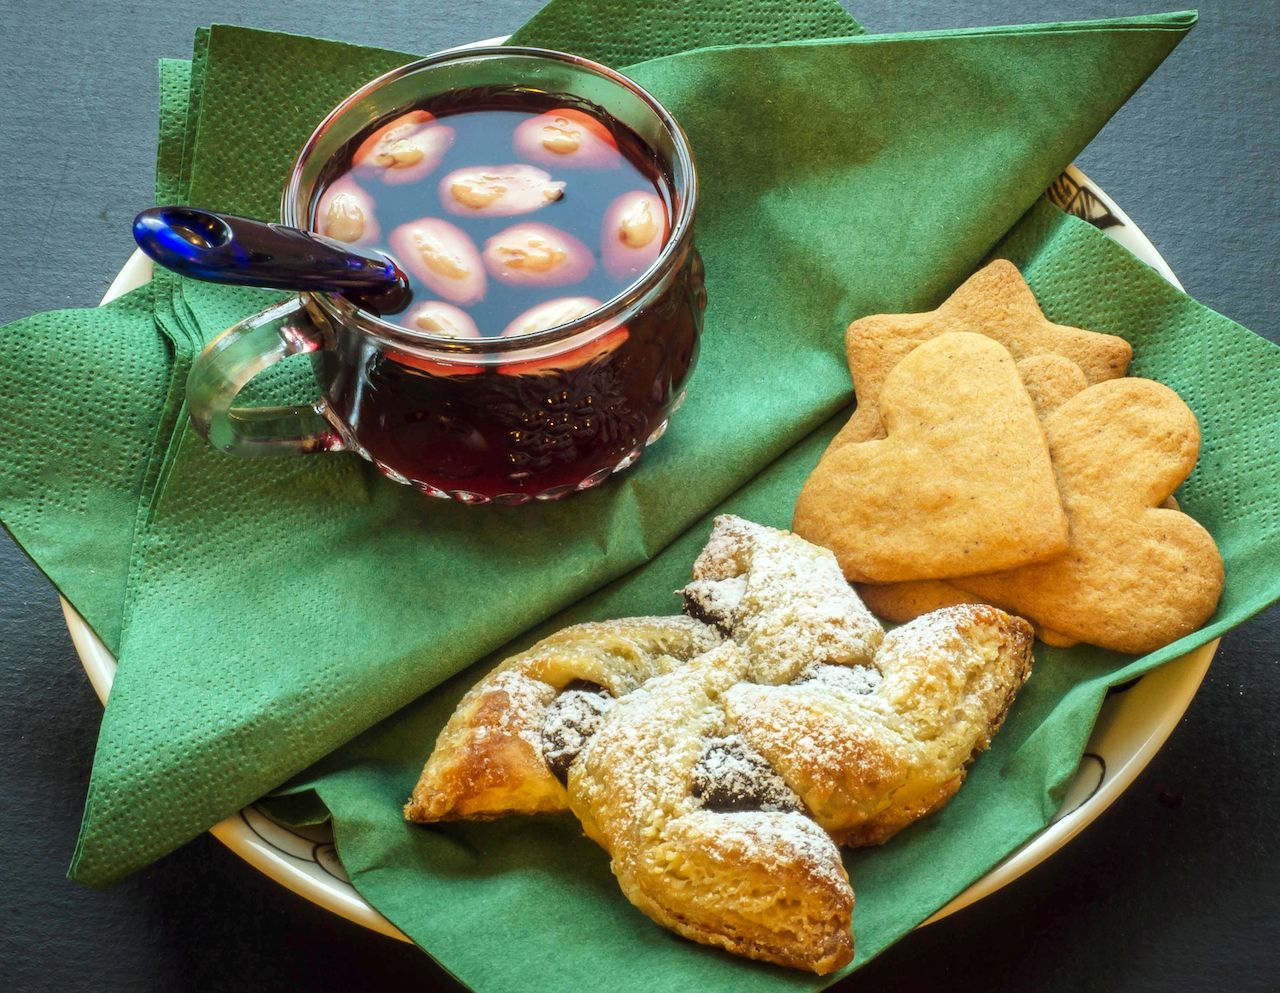 Finnish pastry and glogg